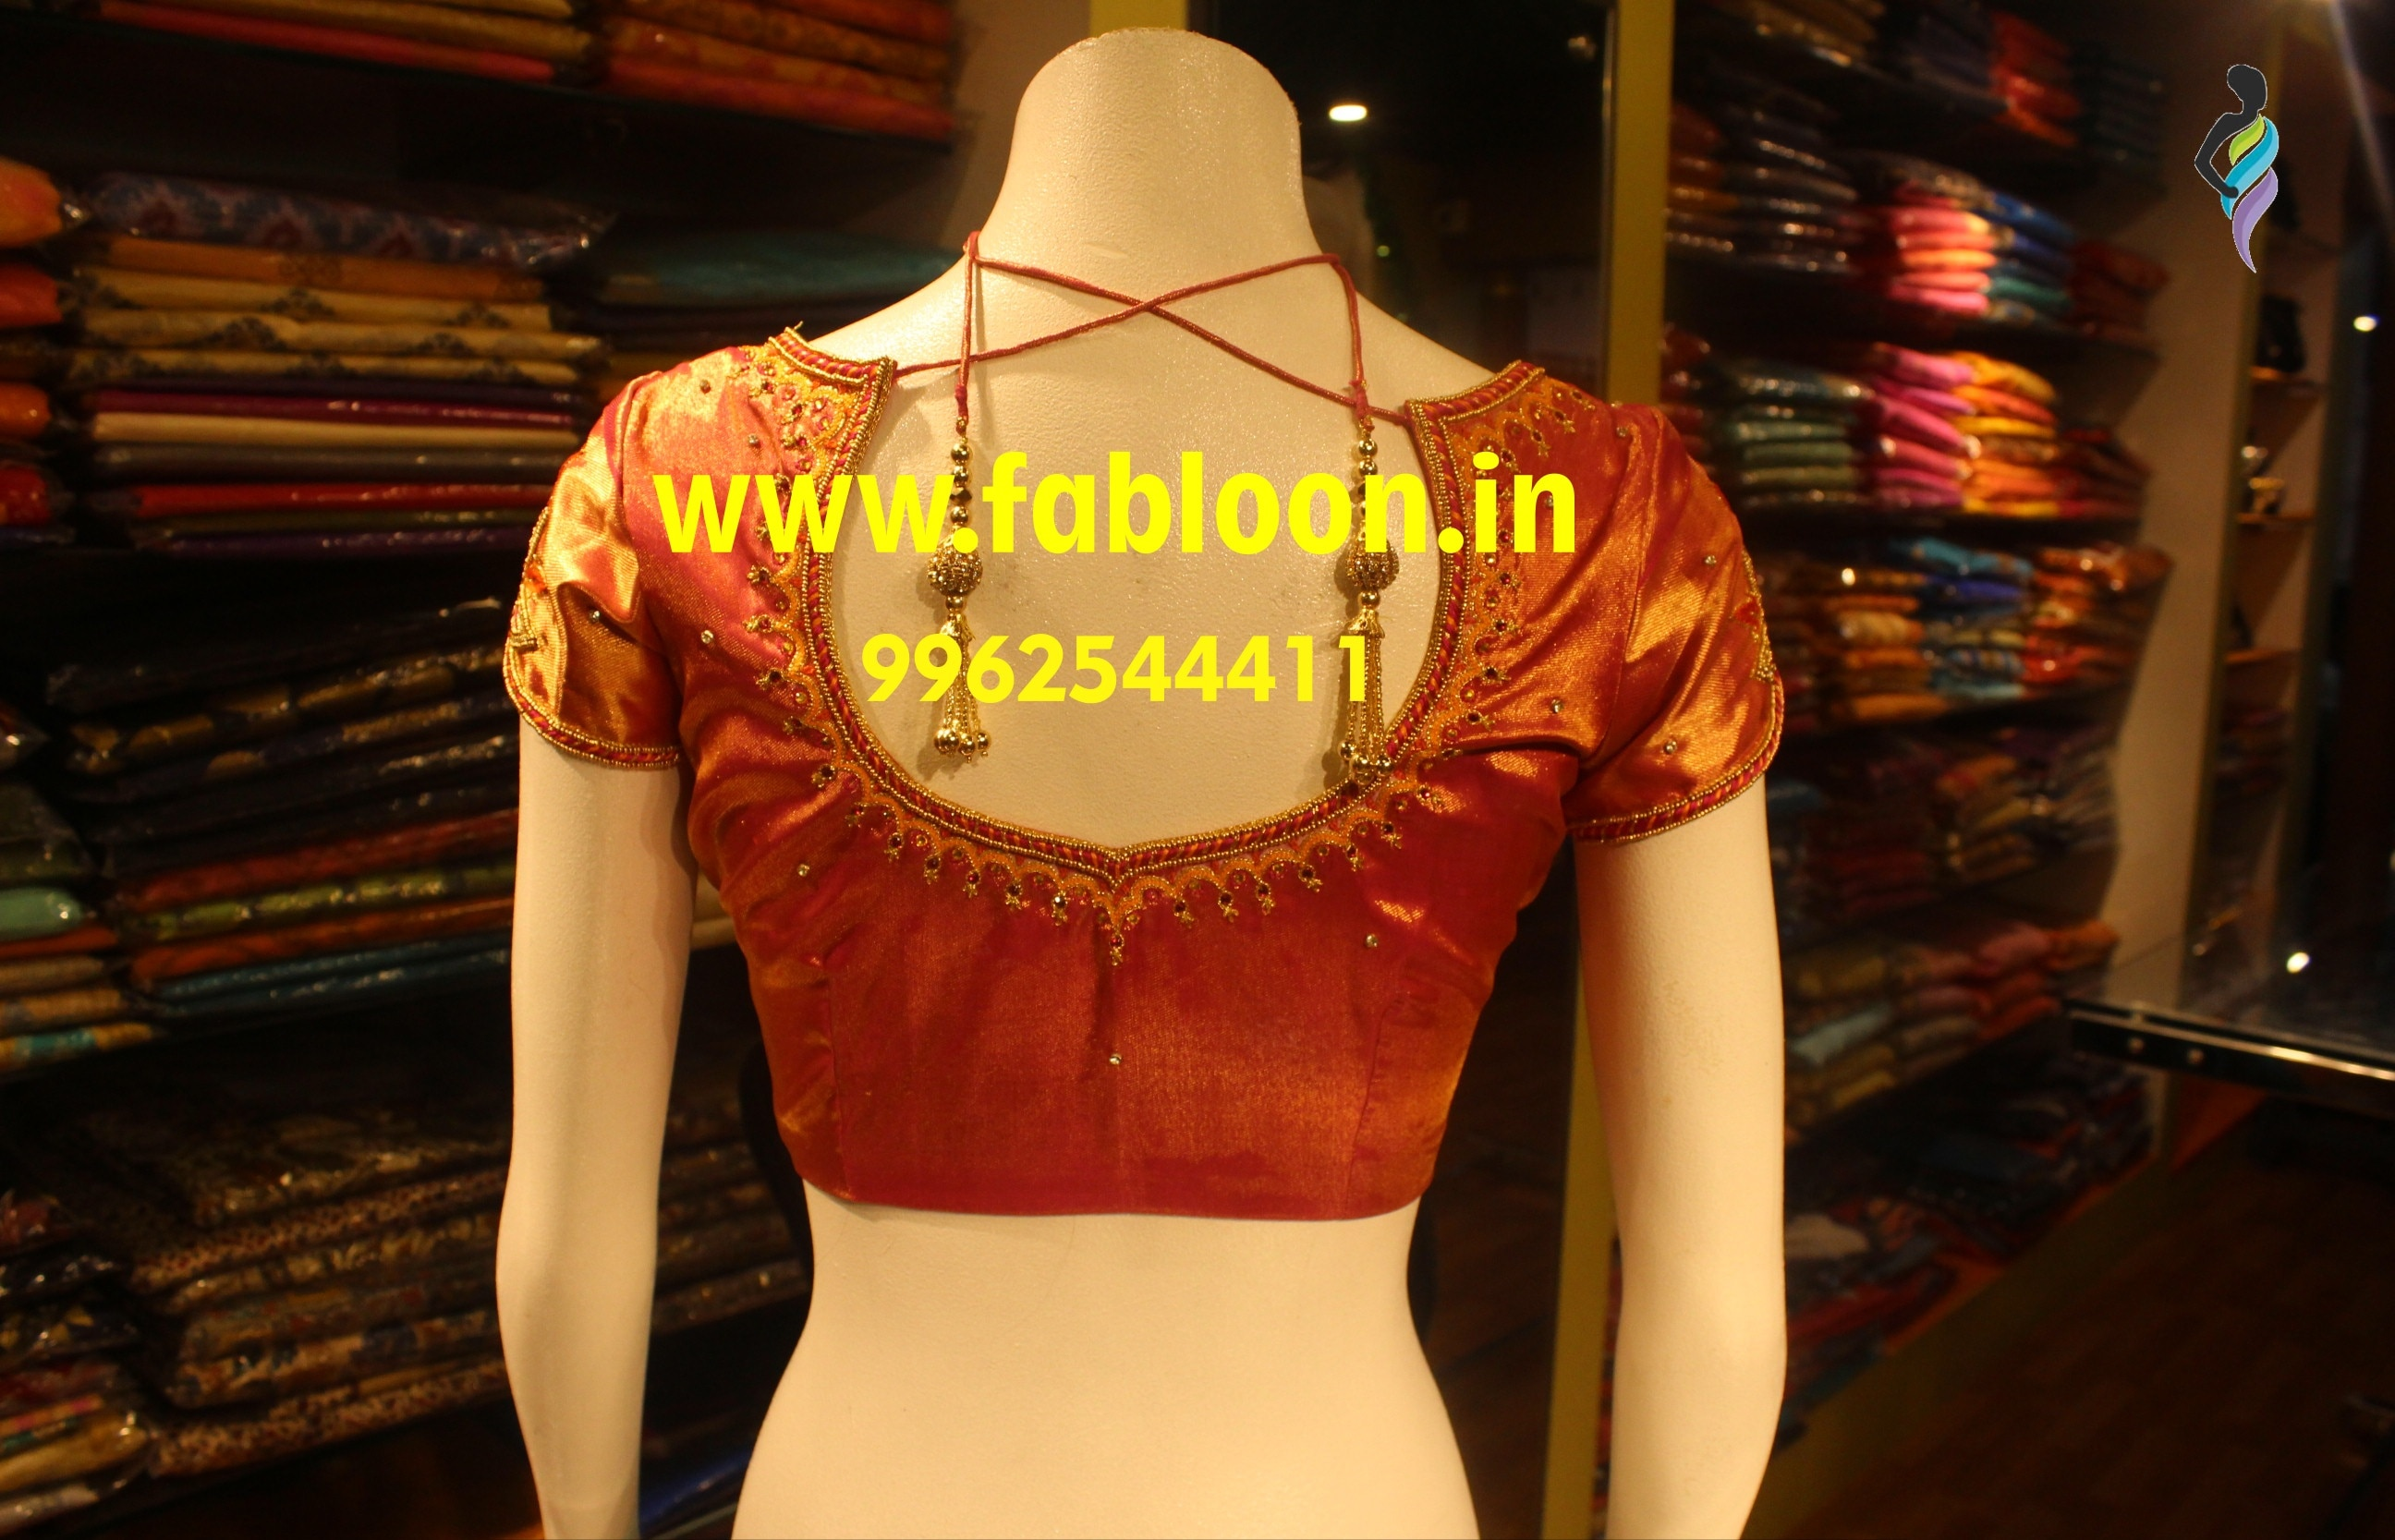 Designer Blouse Stitching At Fabloon Western Wear Boutiques In Vadapalani, Mob: +91 9962544411, 044 48644411.  The Exclusive High Quality Stitched Blouse is for ladies who are craving to look special on any given occasion. Designer Blouse Stitching courtesies your elegance on any time of the day and occasion. If you've been searching for the ideal online platform that offers client-specific Tailoring and Designing then look no further. At Fabloon vadapalani, you should get to browse any design and style you want on your Blouse at a very reasonable price. Don't fuss over the unavailability of Designer Tailored Blouses because that's exactly what you'd get in our showroom Fabloon. Check all for our new updates.